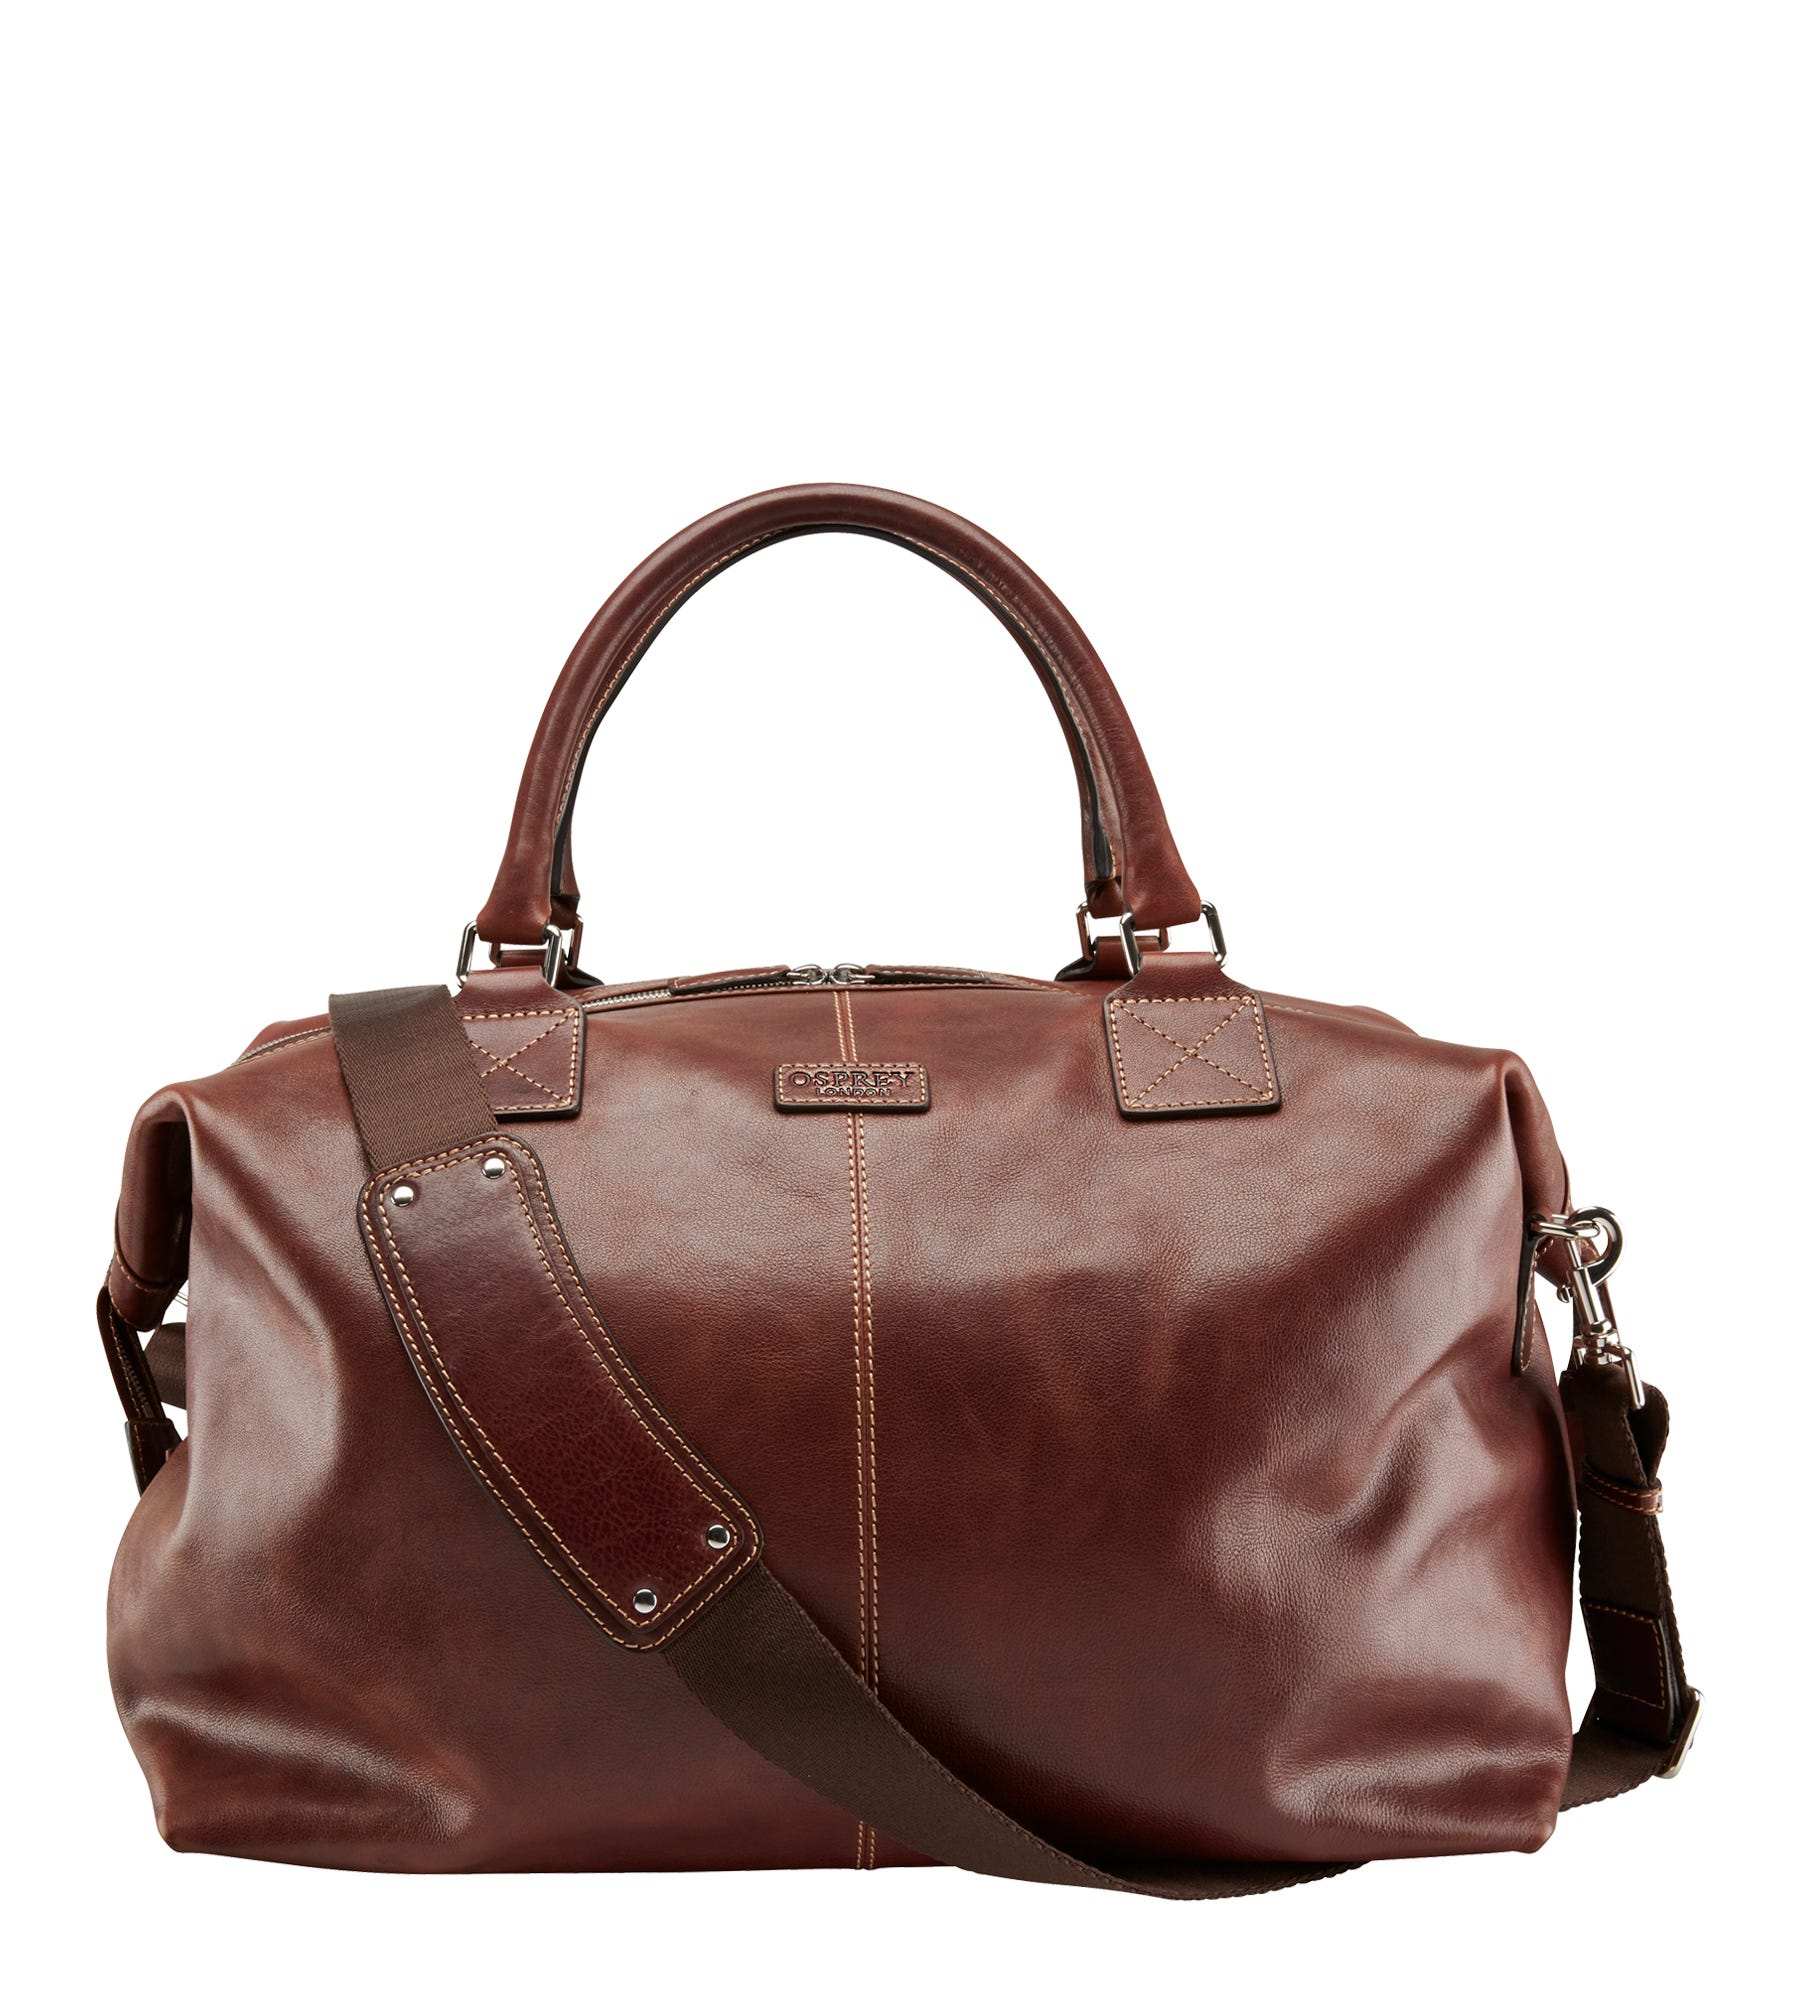 An image of The Stowaway Leather Holdall